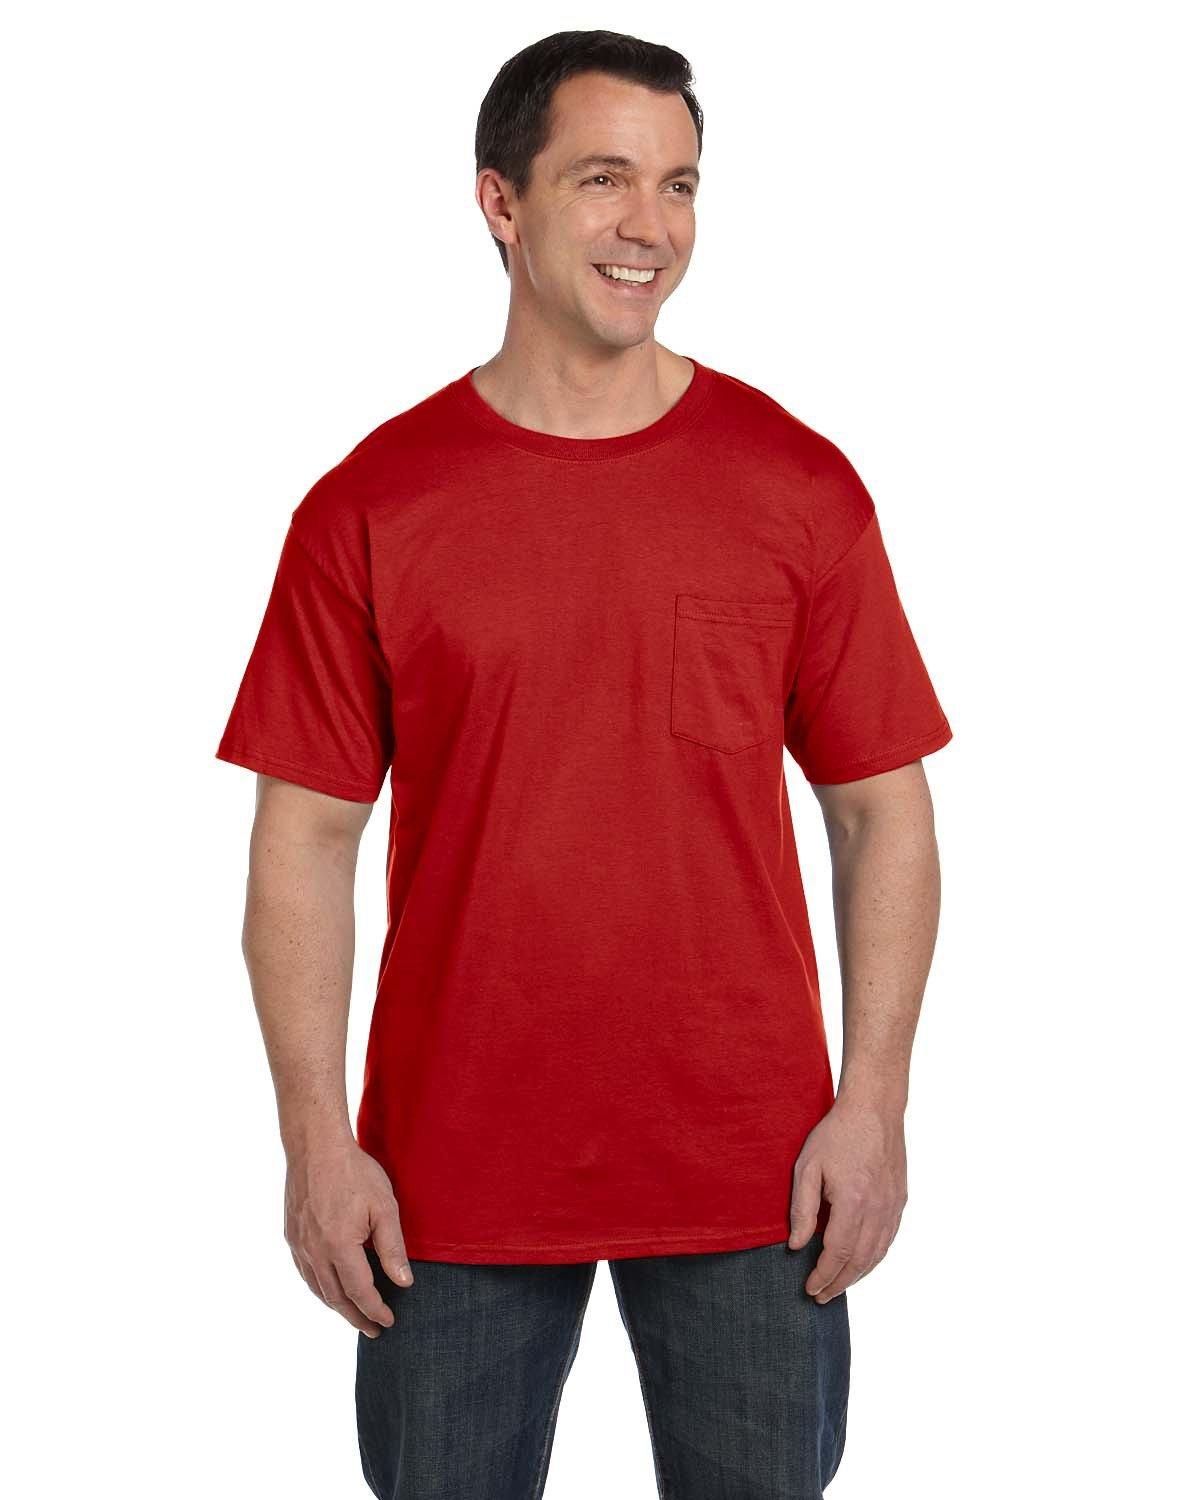 Hanes Adult Beefy-T® with Pocket DEEP RED